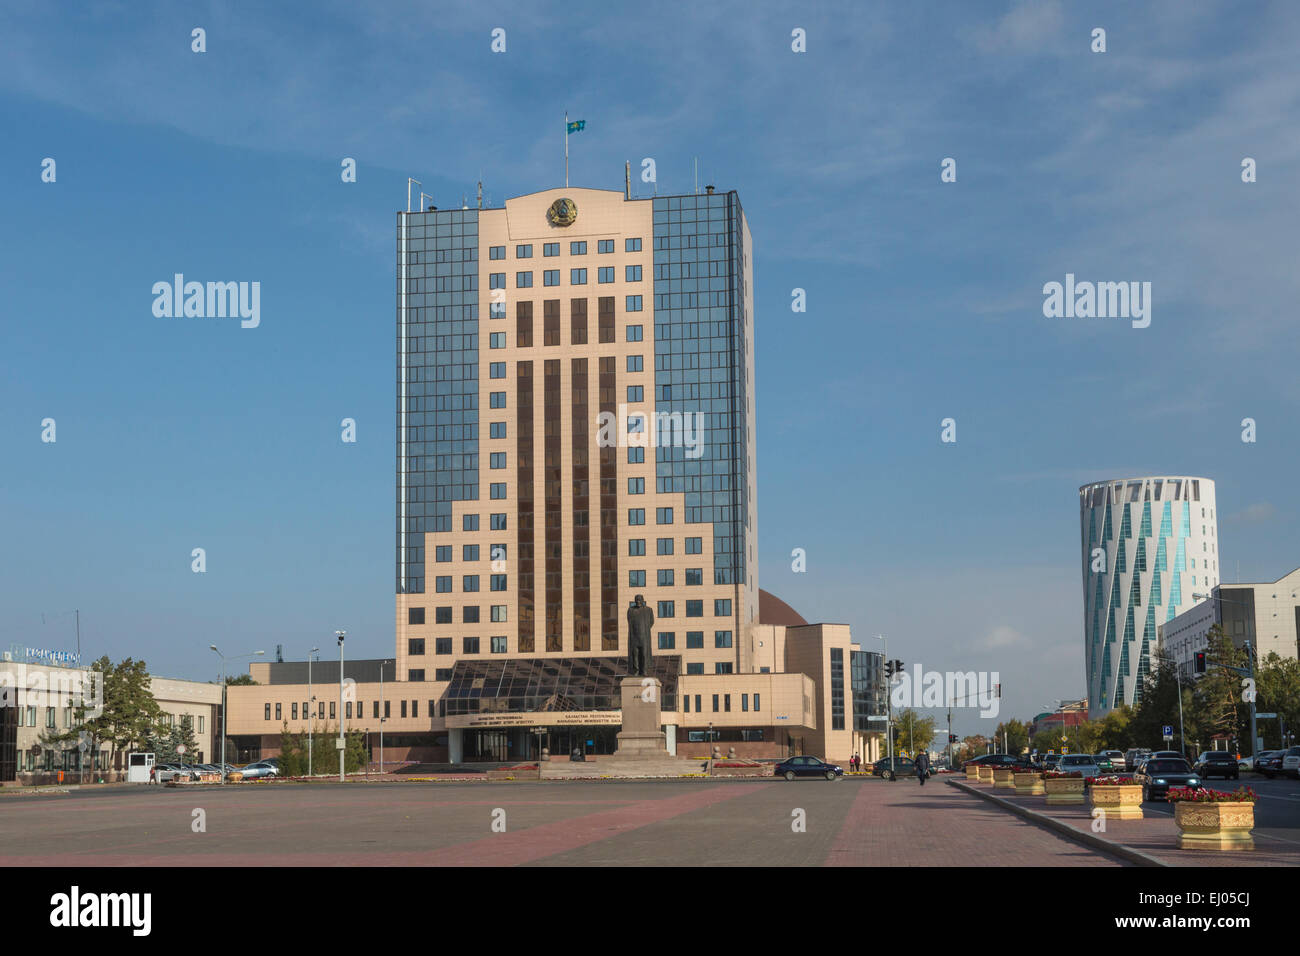 Agency, Astana, City, Kazakh Government, Kazakhstan, Central Asia, Summer, architecture, downtown, no people, touristic, - Stock Image